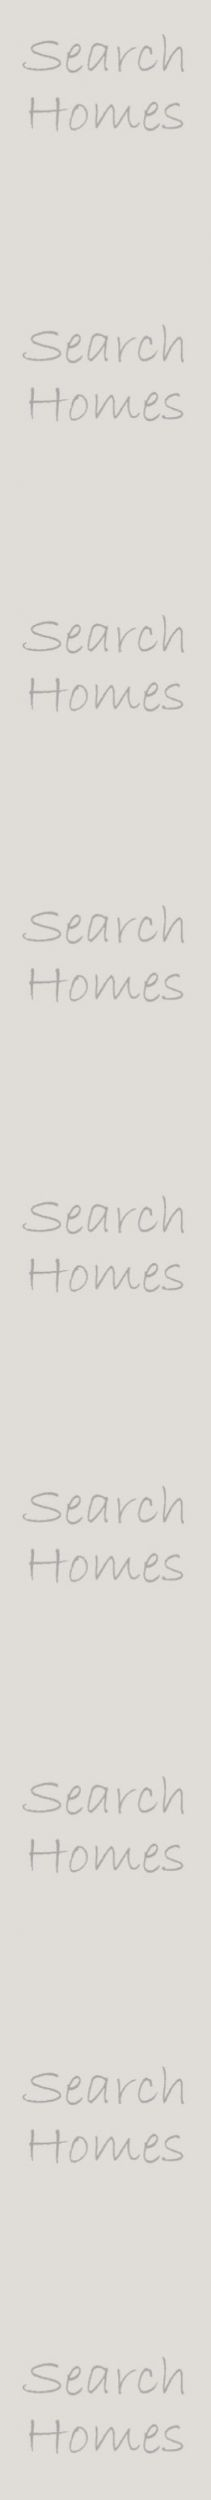 search_homes_mls